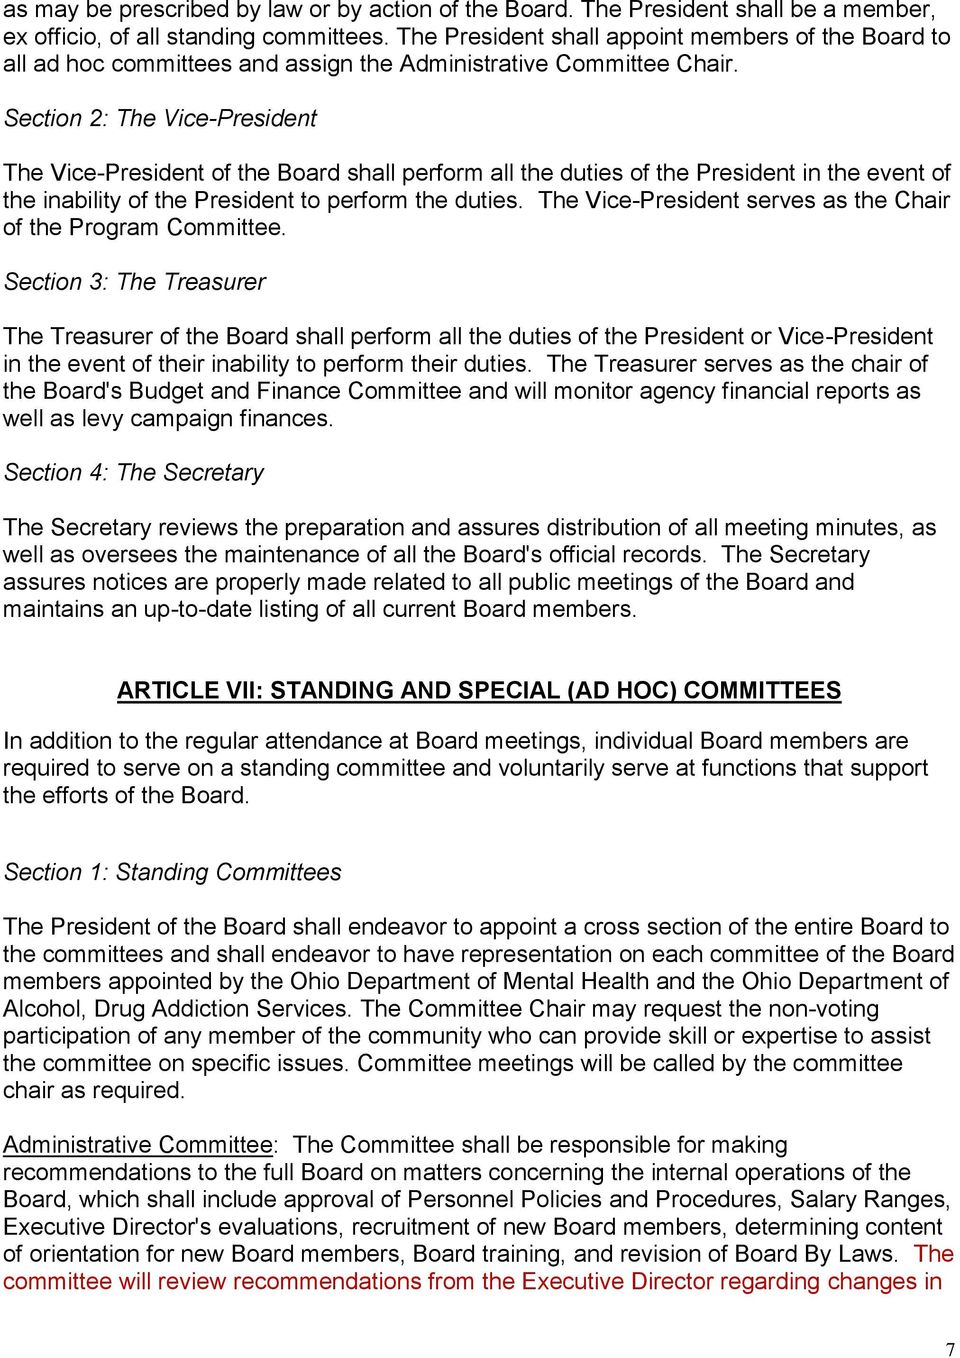 Section 2: The Vice-President The Vice-President of the Board shall perform all the duties of the President in the event of the inability of the President to perform the duties.